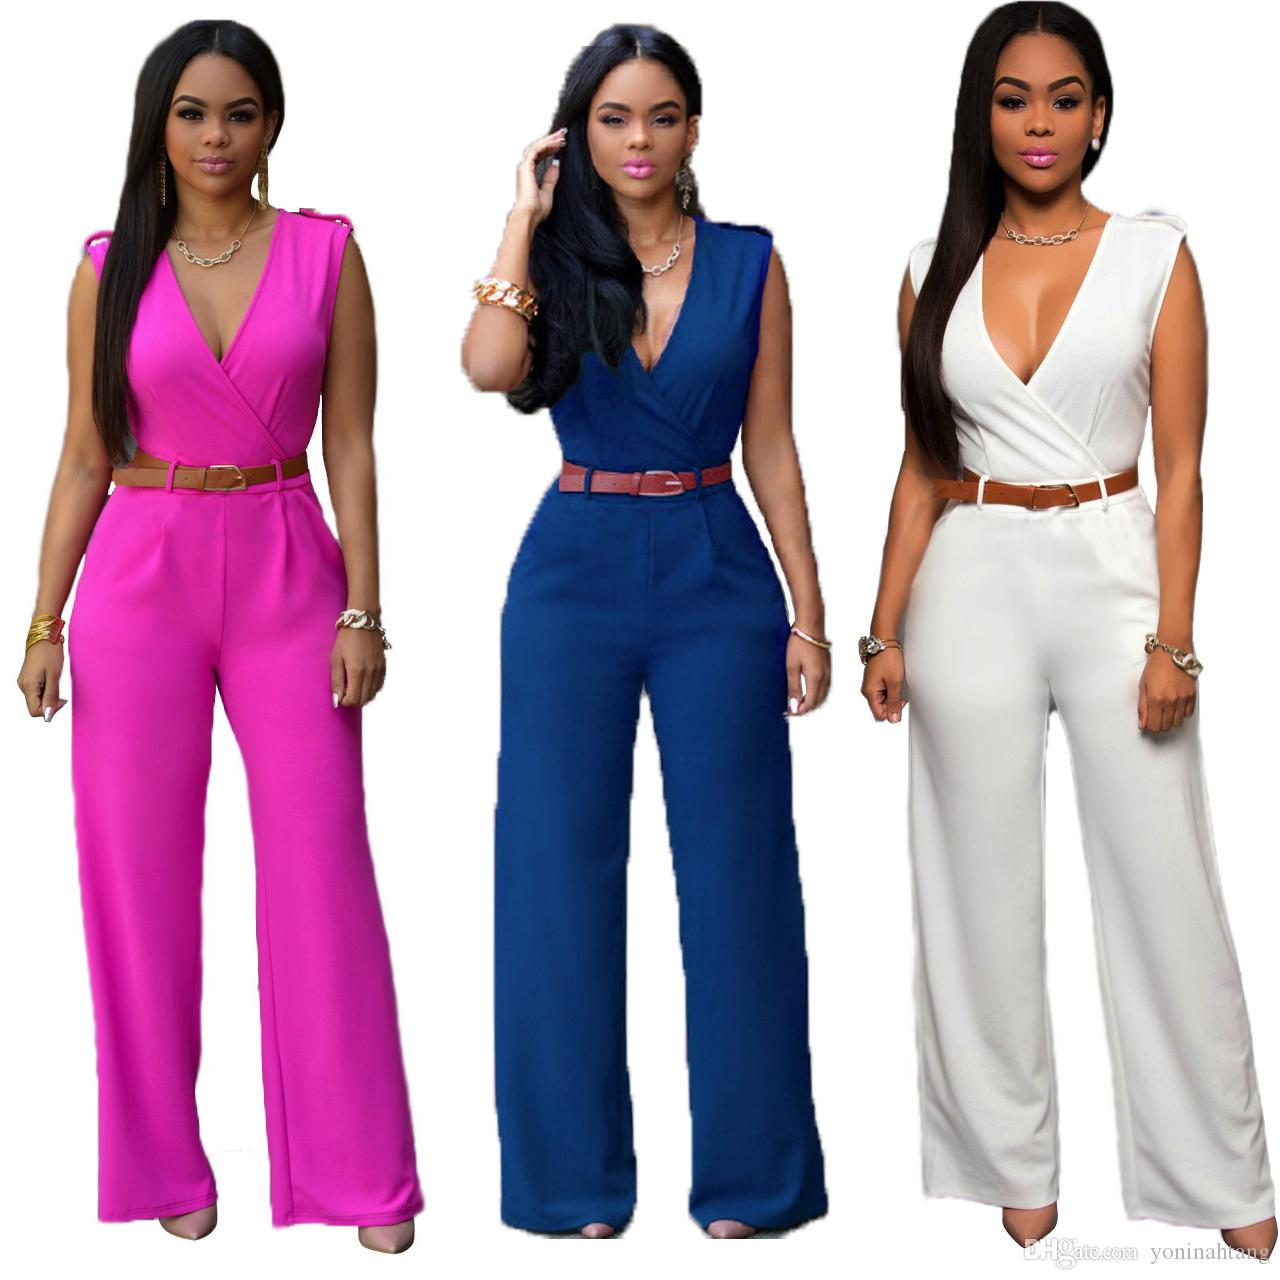 Wholesale free shipping Women Sleeveless V-Neck High Waist Wide Leg Romper Pants Jumpsuit with Belt size S-XL many colors